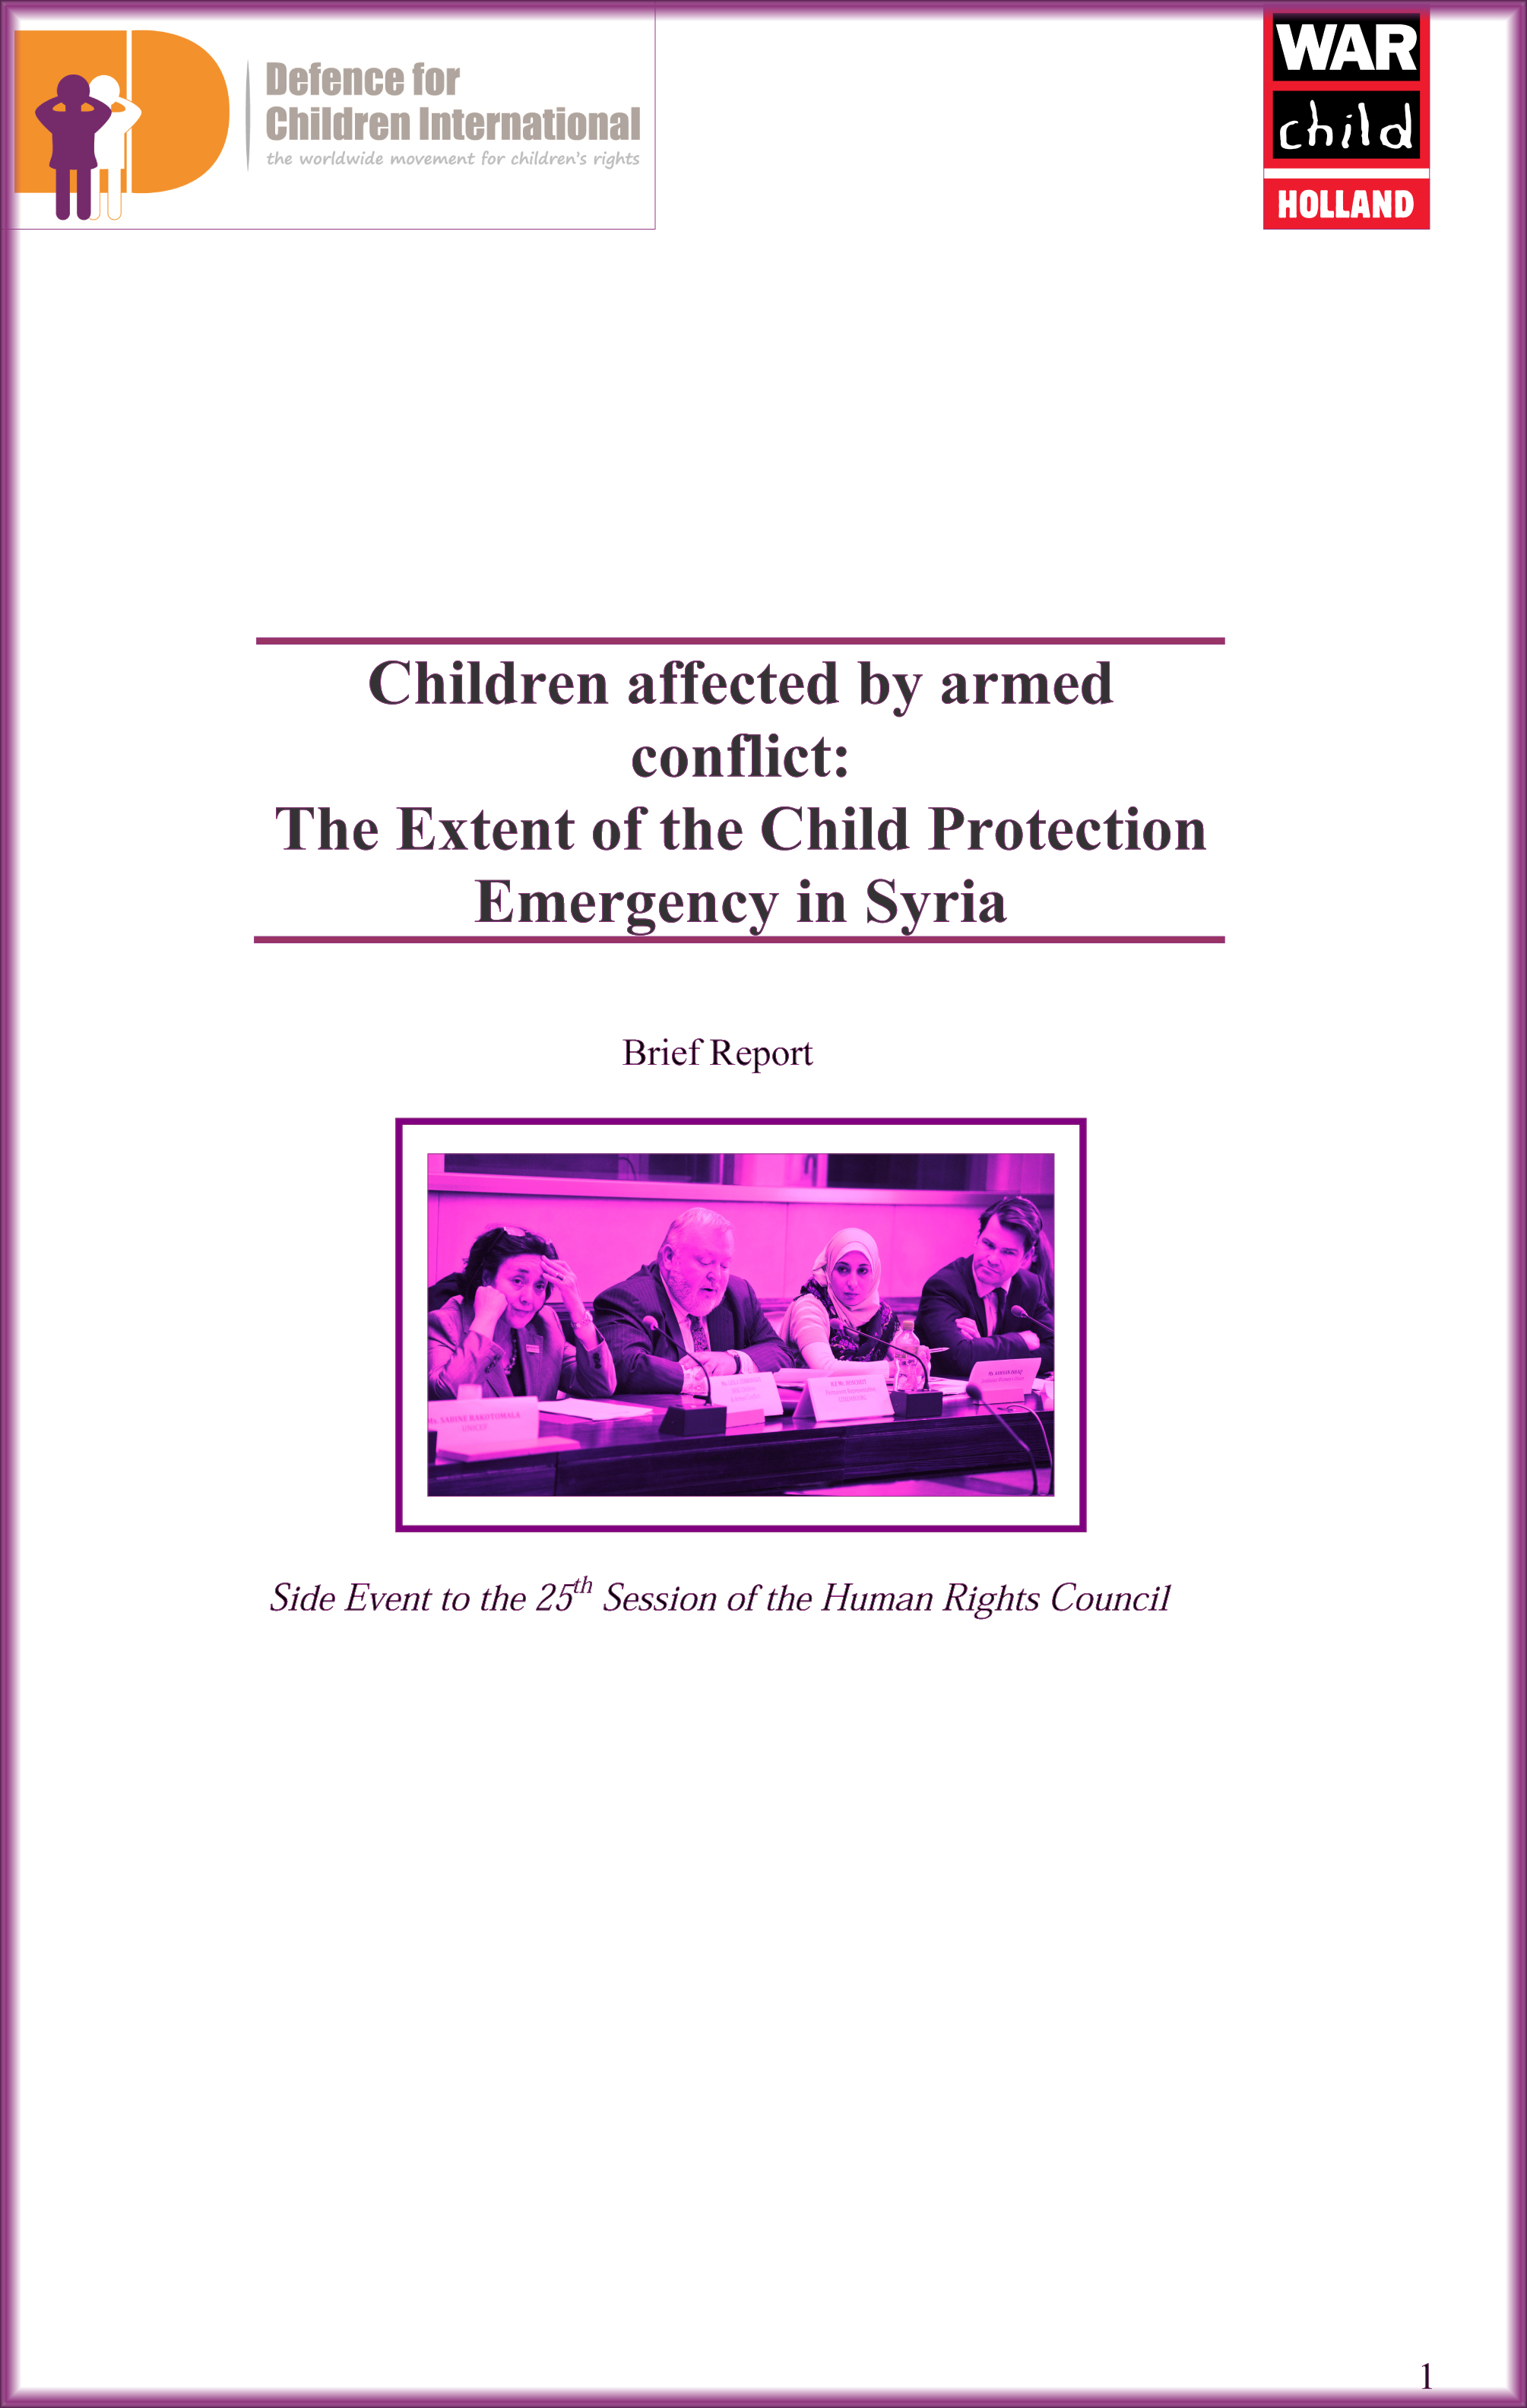 Report DCI WCH EventSyria HRC25 CoverPage